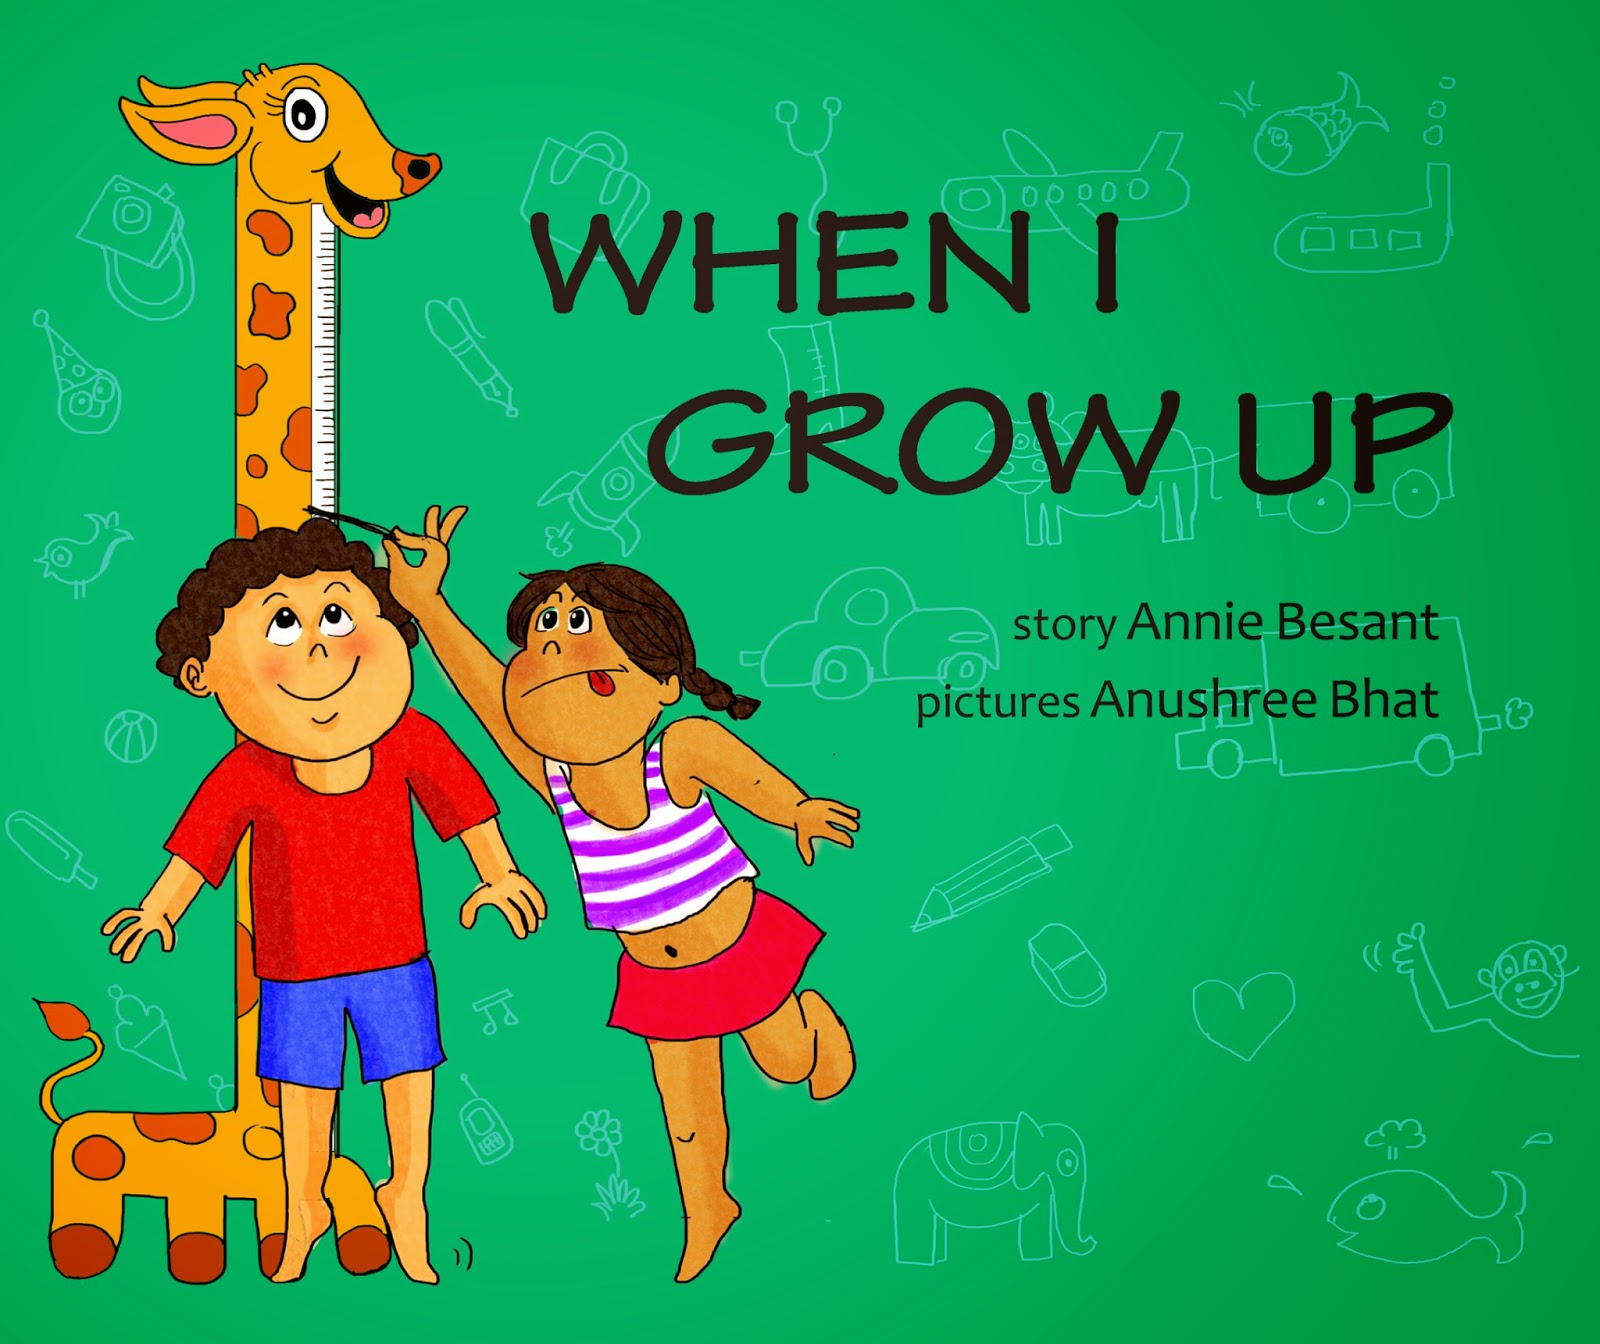 http://tulikabooks.com/our-books/picture-books/general-picture-books/when-i-grow-up